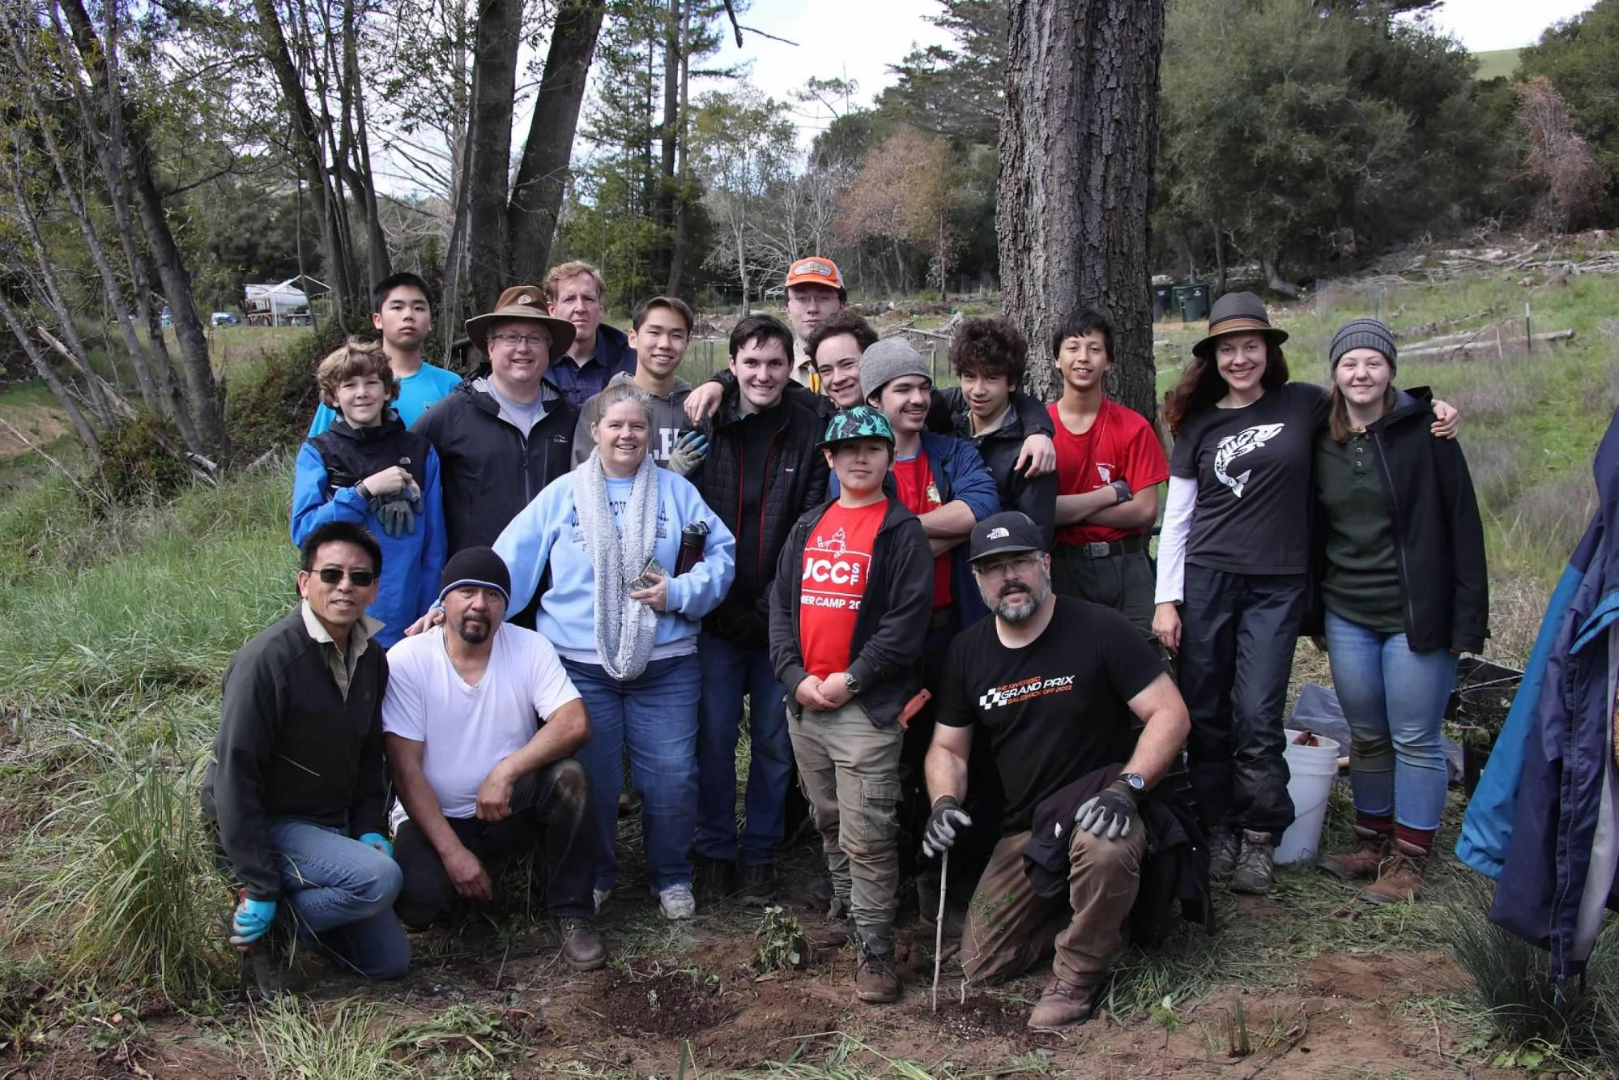 Eagle Scout Project Transforms Upstream Section of Tocaloma Floodplain Project